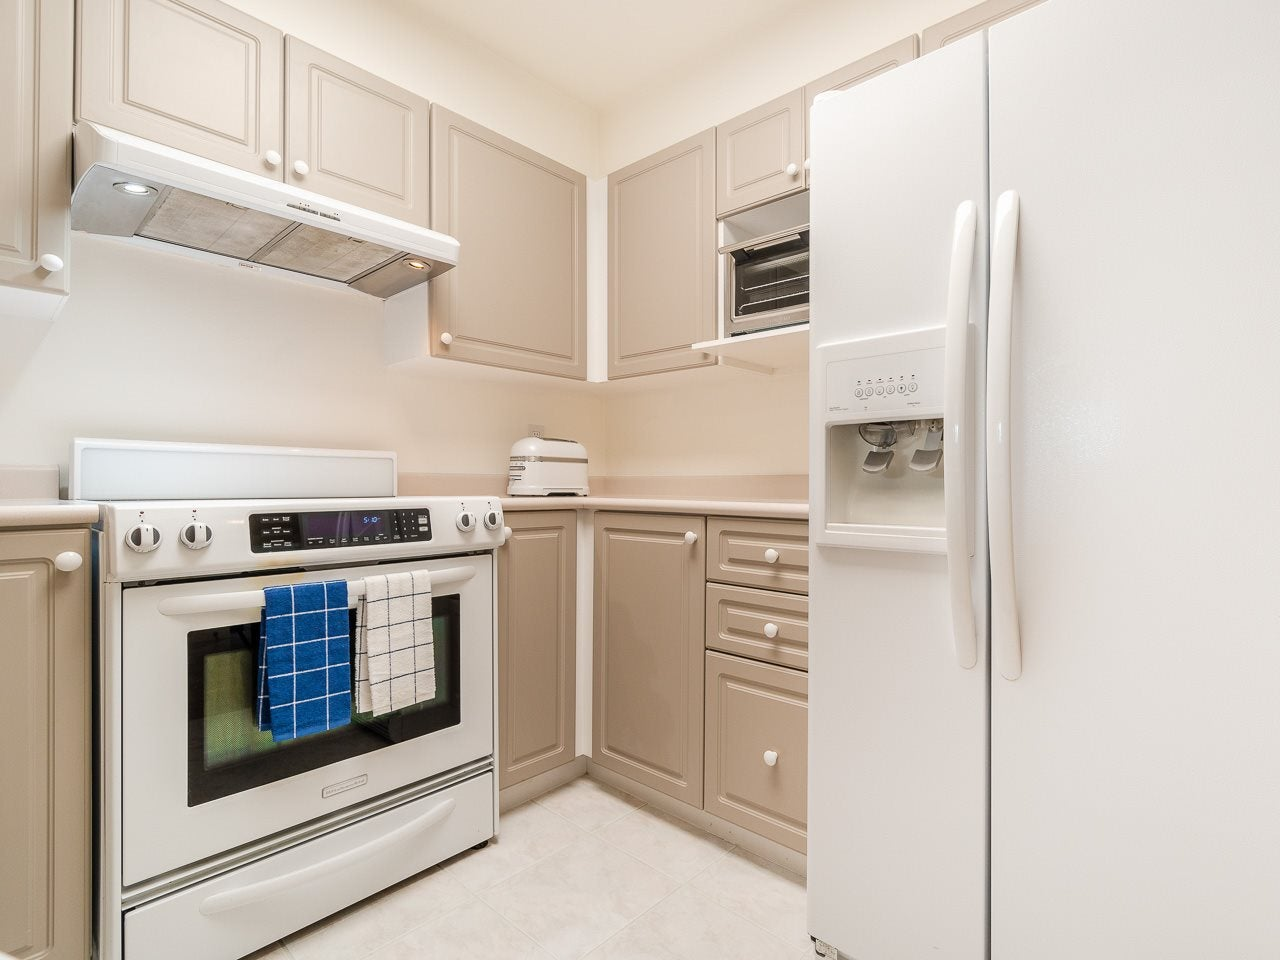 306 2105 W 42ND AVENUE - Kerrisdale Apartment/Condo for sale, 1 Bedroom (R2511504) - #14